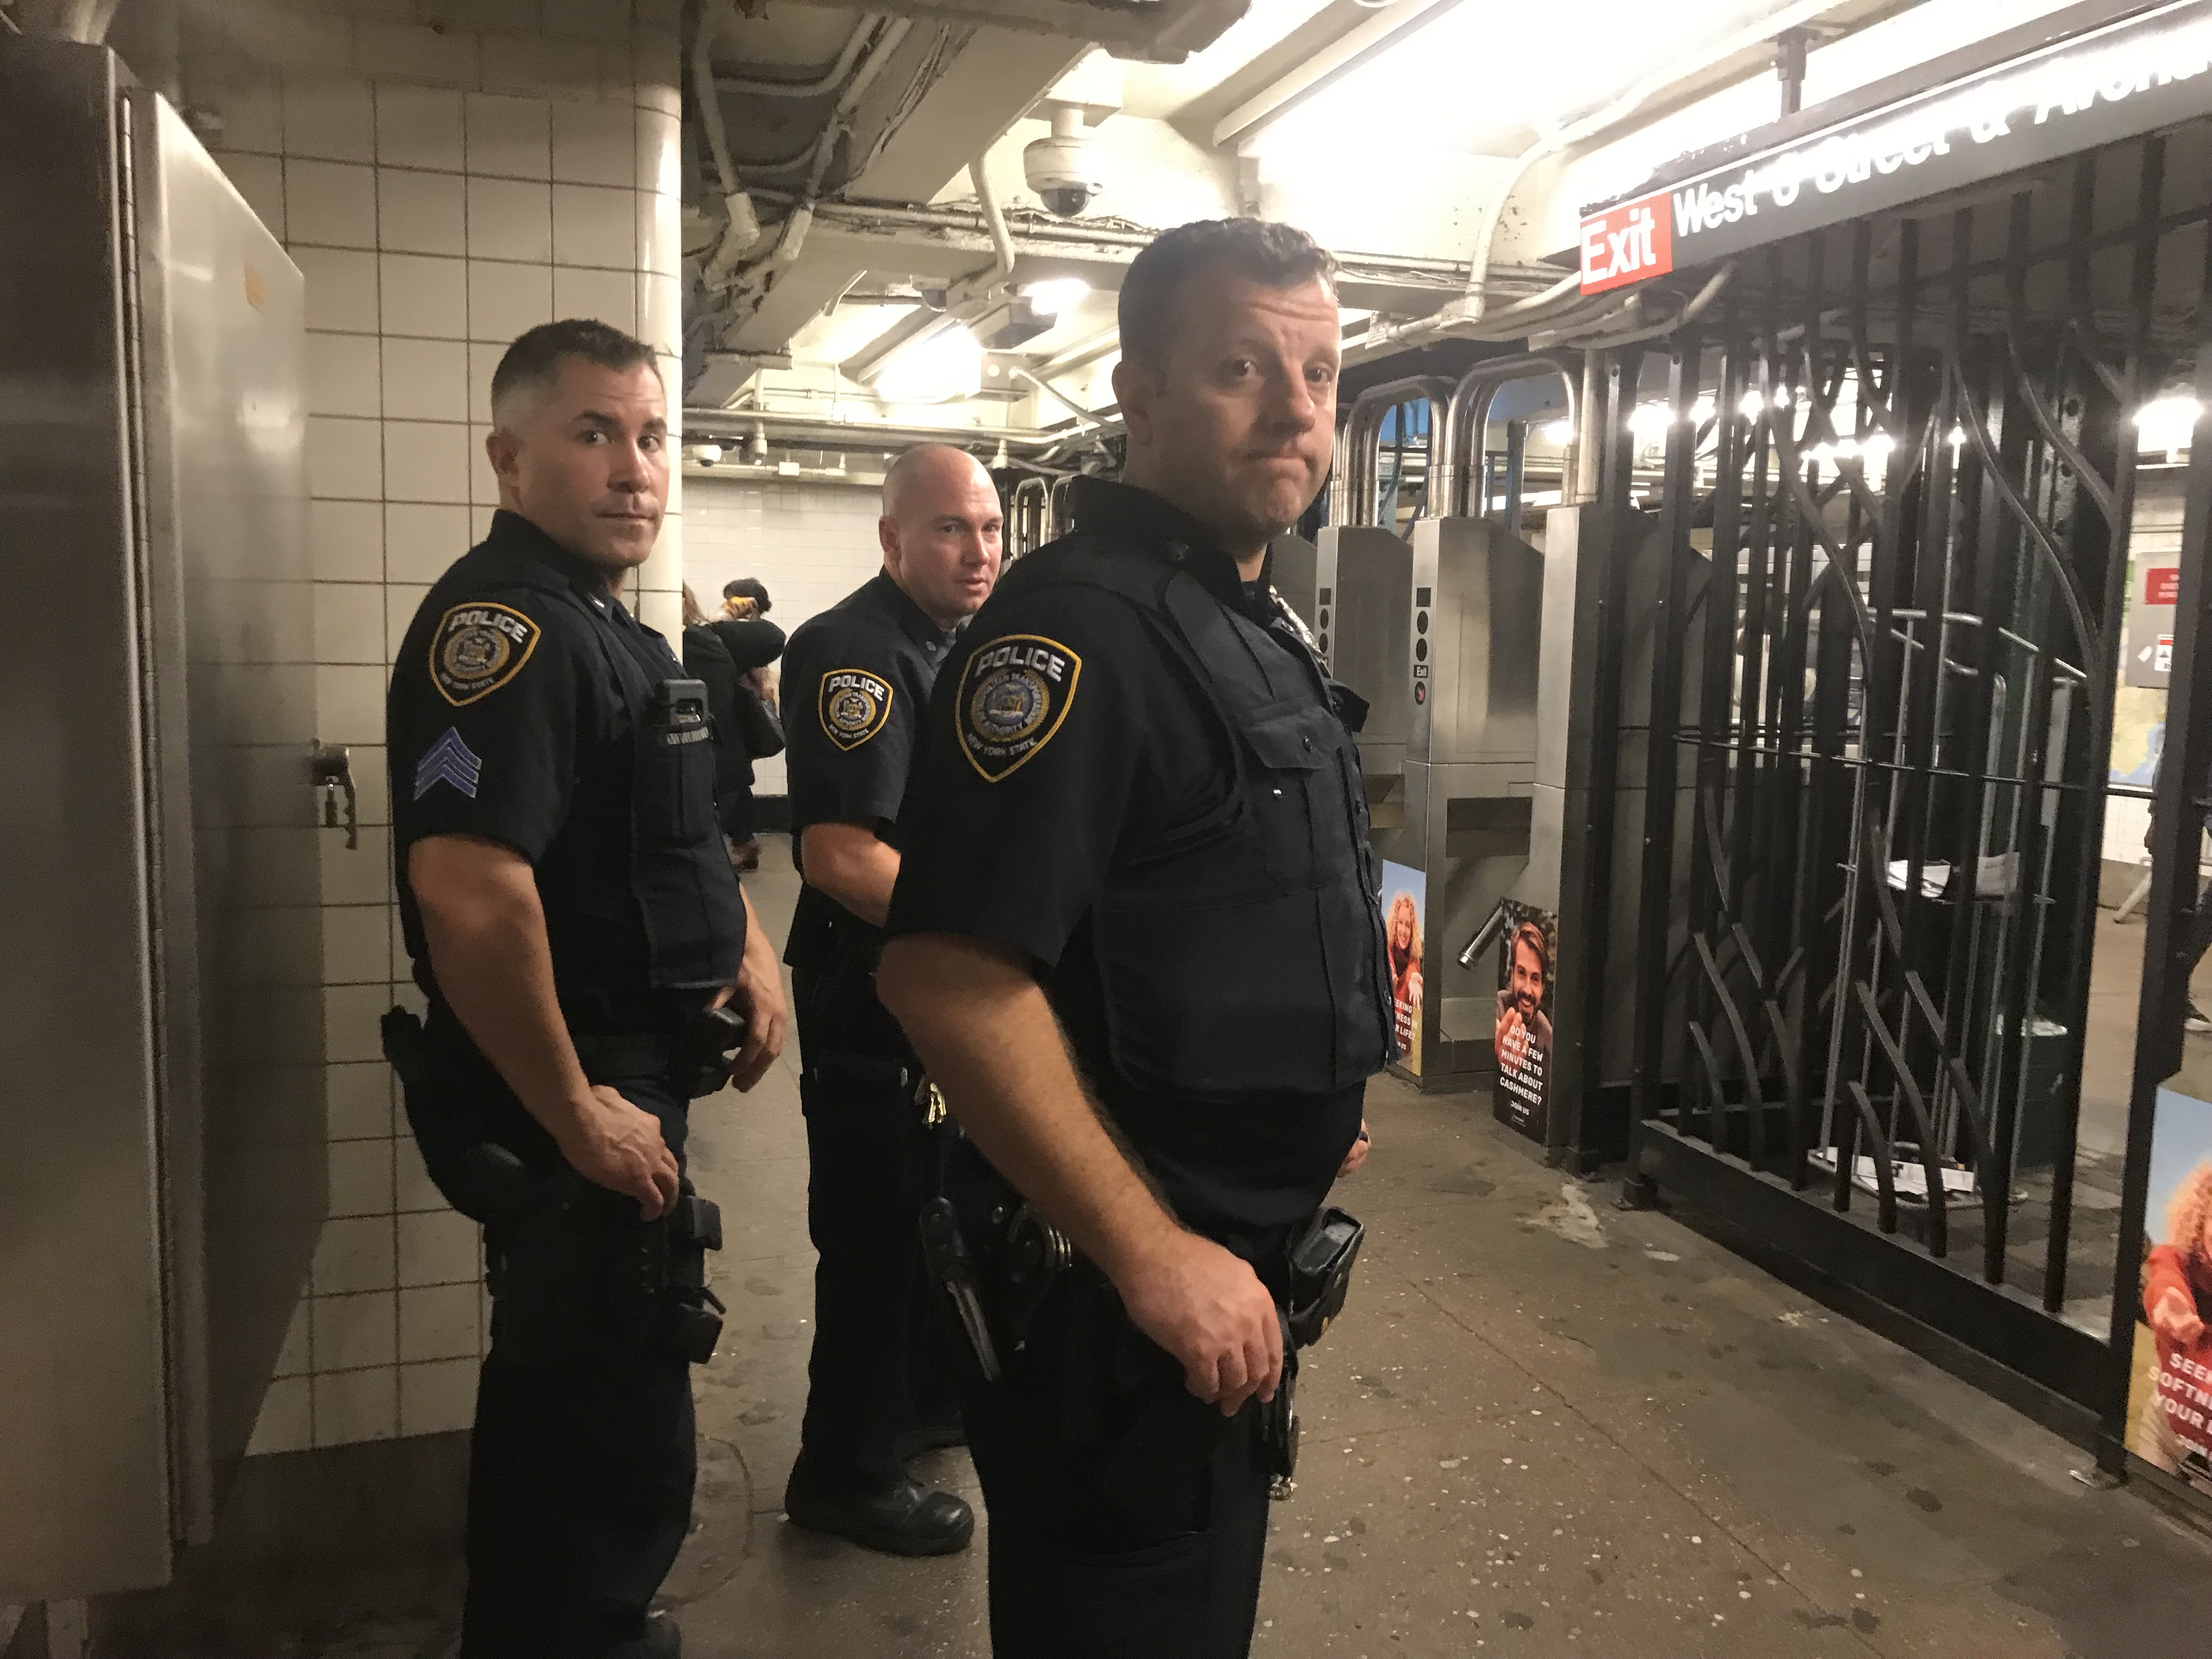 Four MTA police officers seen at the W 4th Street station earlier this month